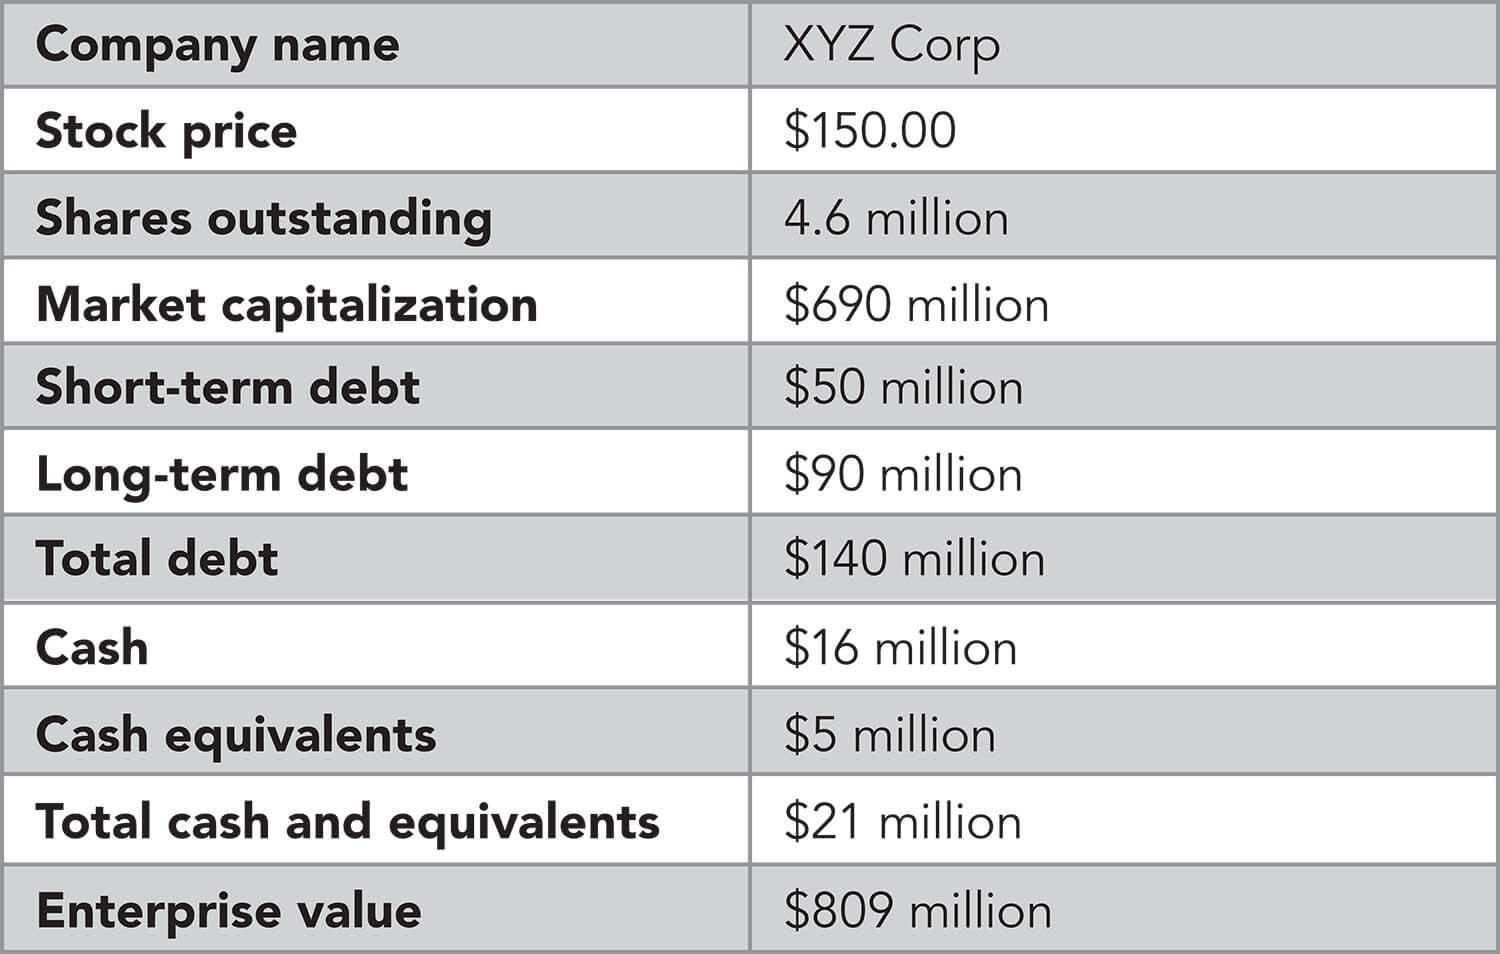 A table representation of the figures used in the sample enterprise value calculation shown on this page.